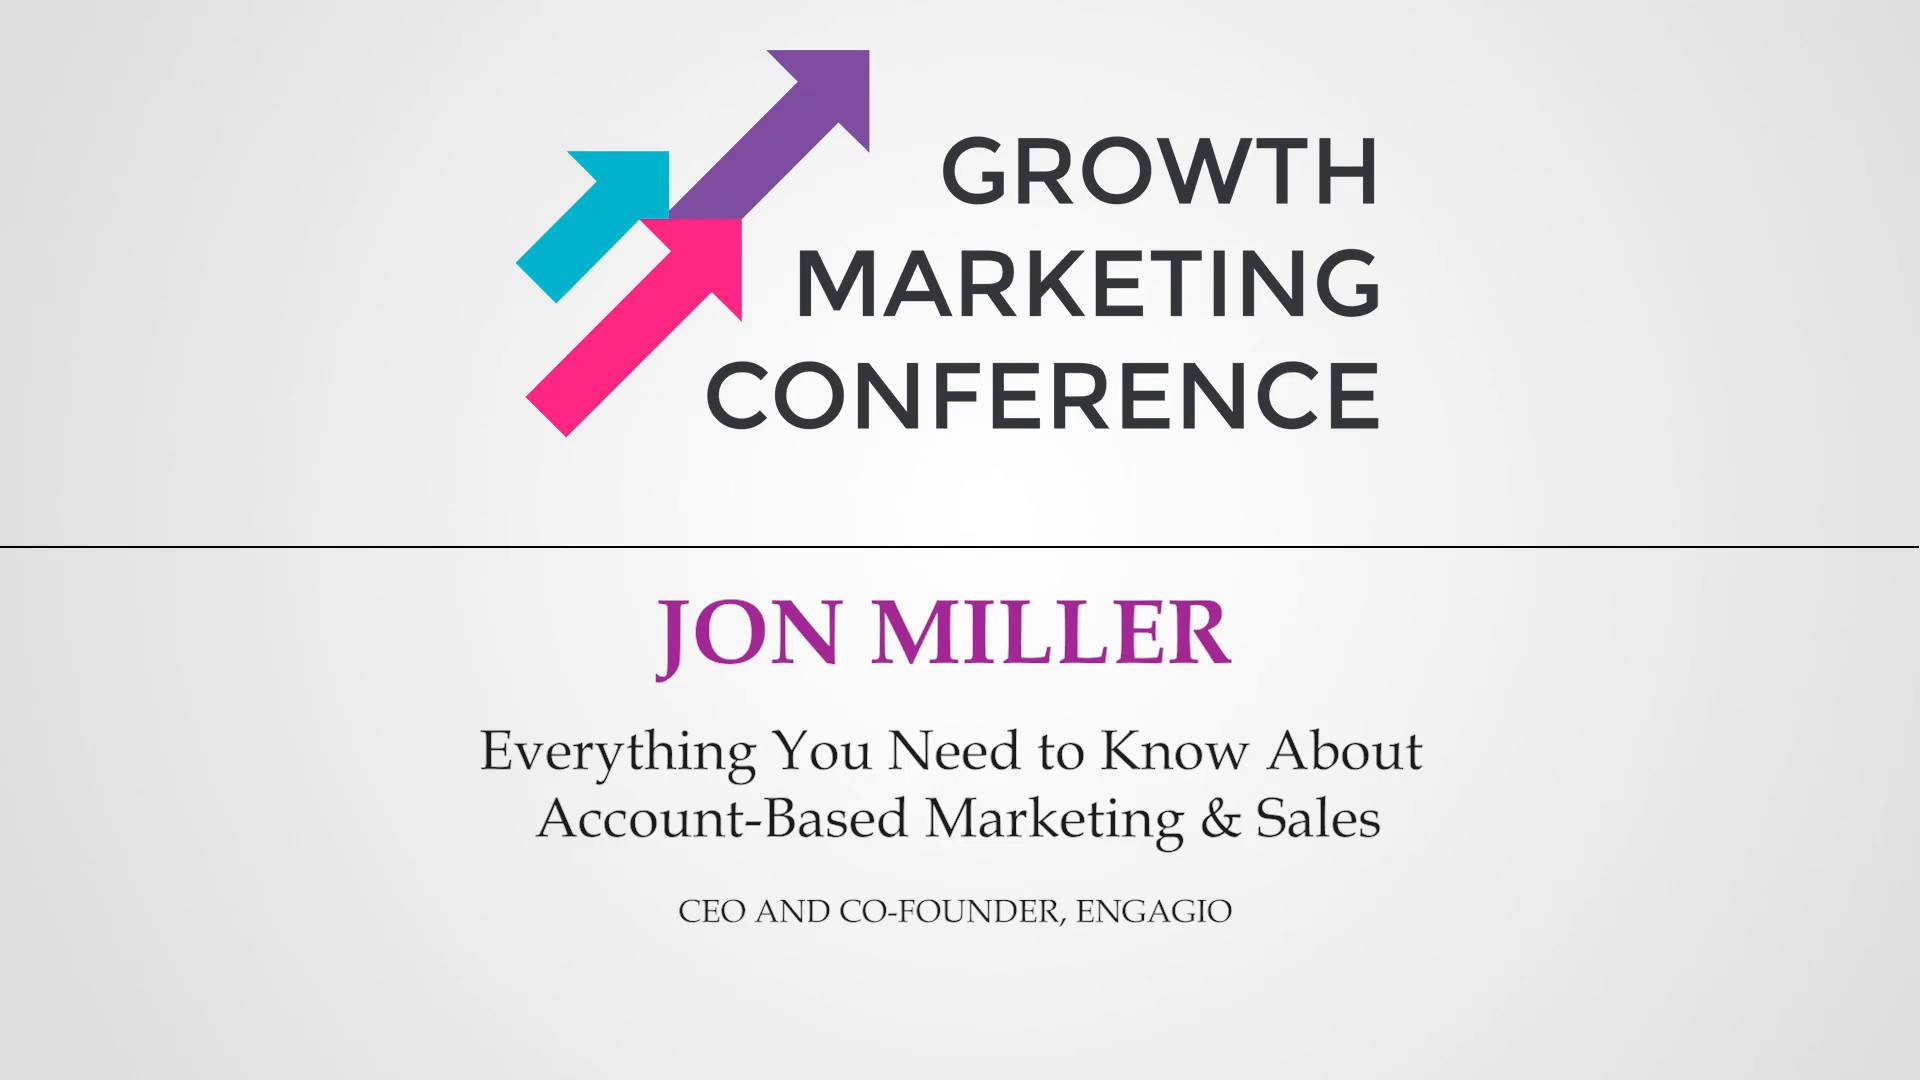 Everything You Need to Know About Account-Based Marketing & Sales